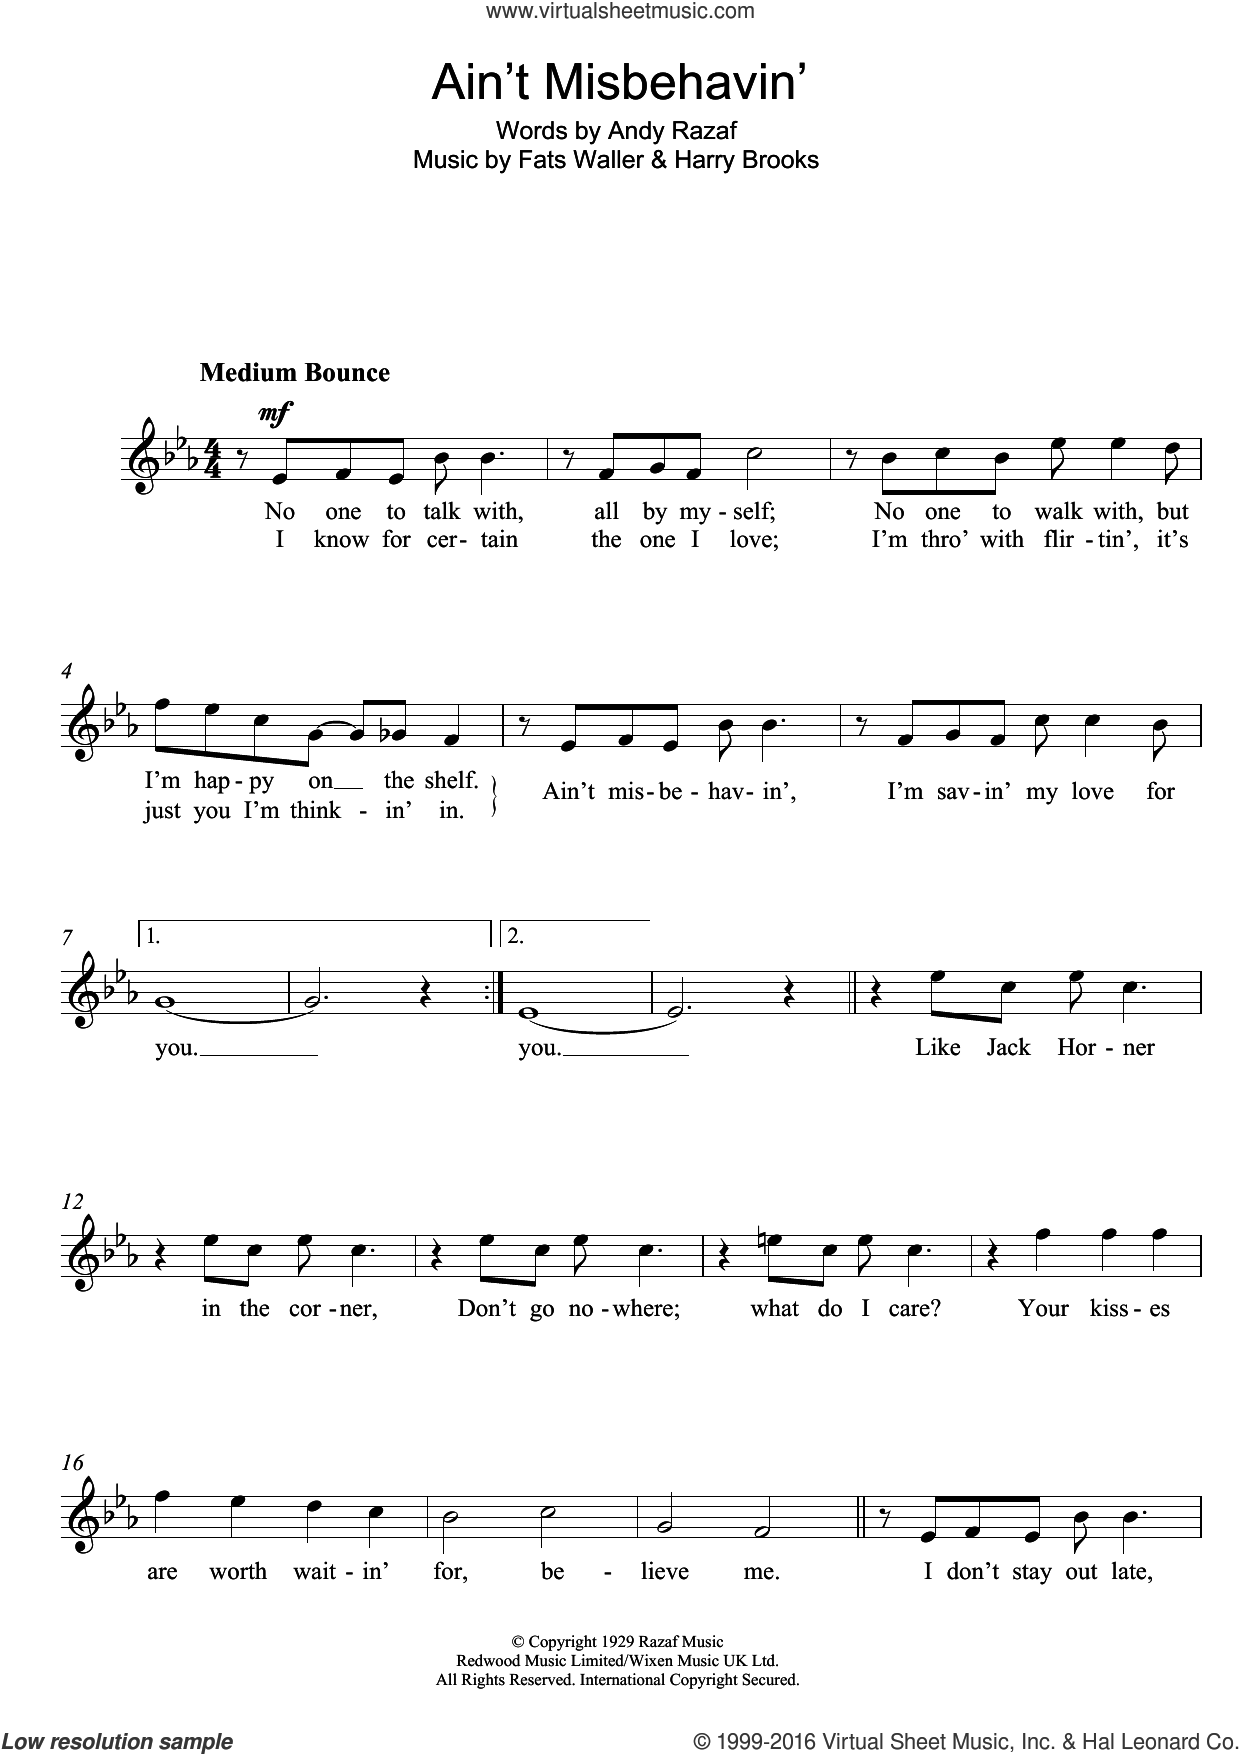 Ain't Misbehavin' sheet music for voice and other instruments (fake book) by Frank Sinatra, Andy Razaf, Harry Brooks and Thomas Waller, intermediate skill level